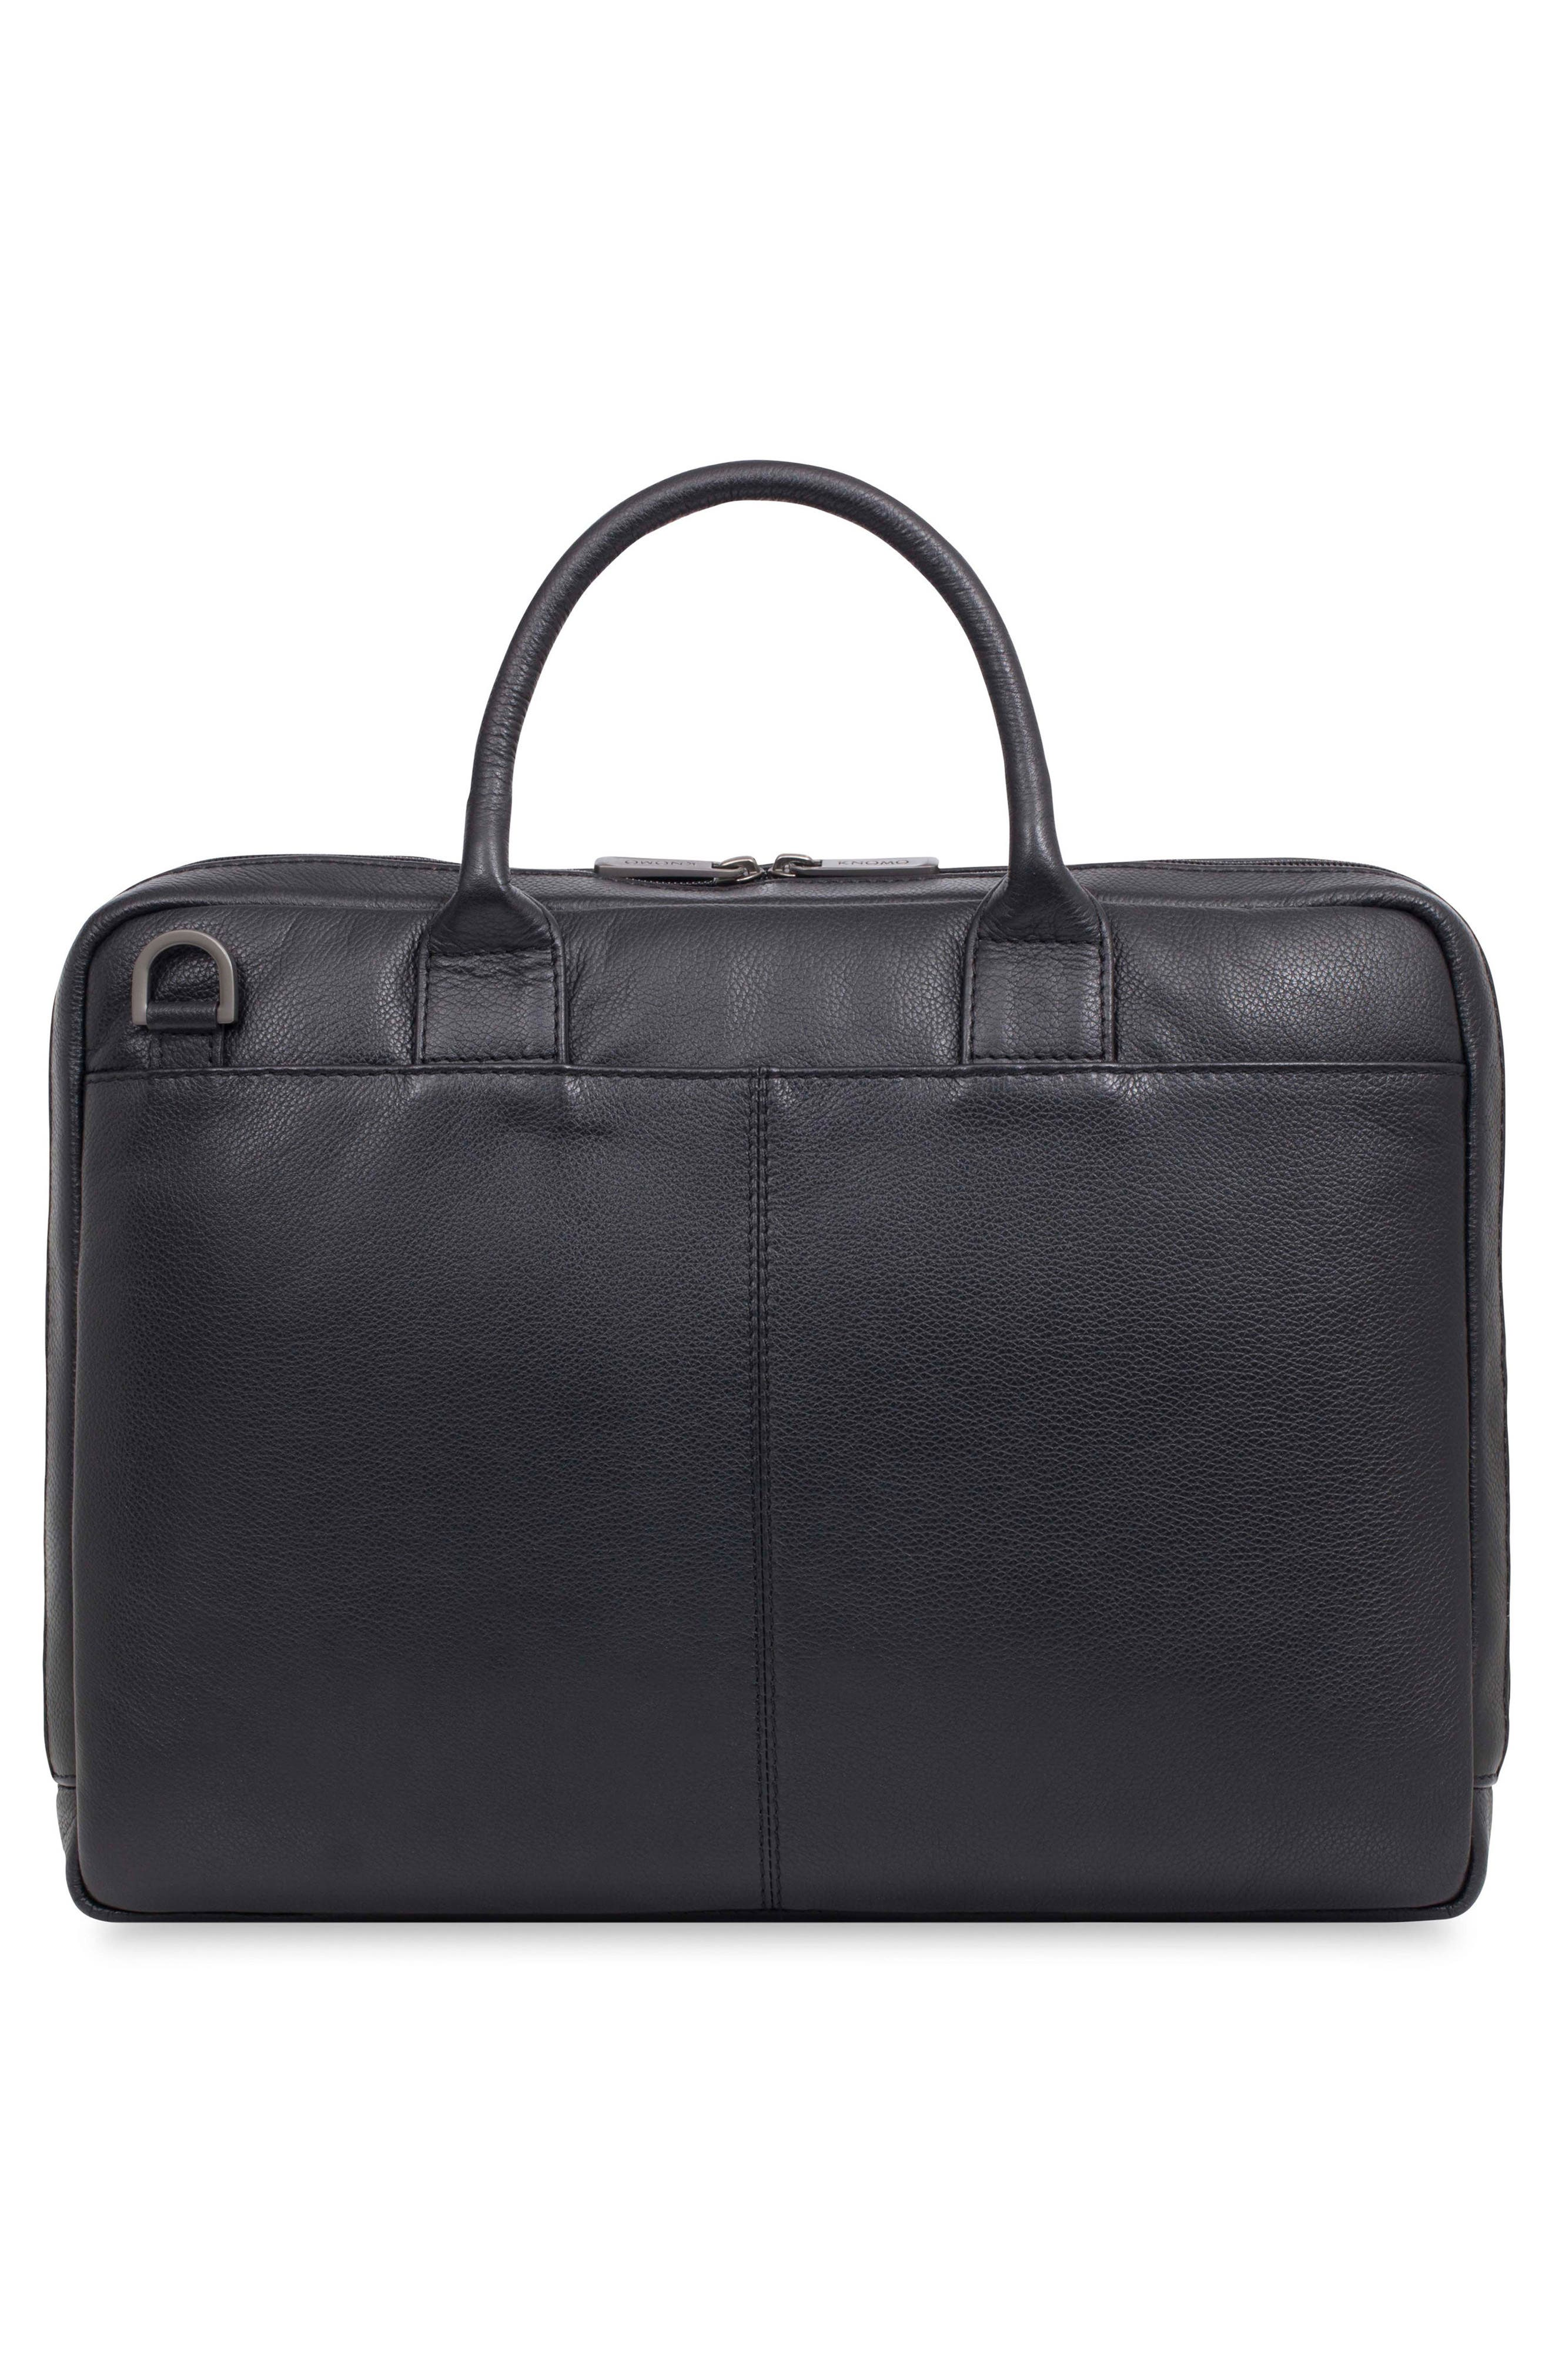 Barbican Foster Leather Briefcase,                             Alternate thumbnail 2, color,                             BLACK